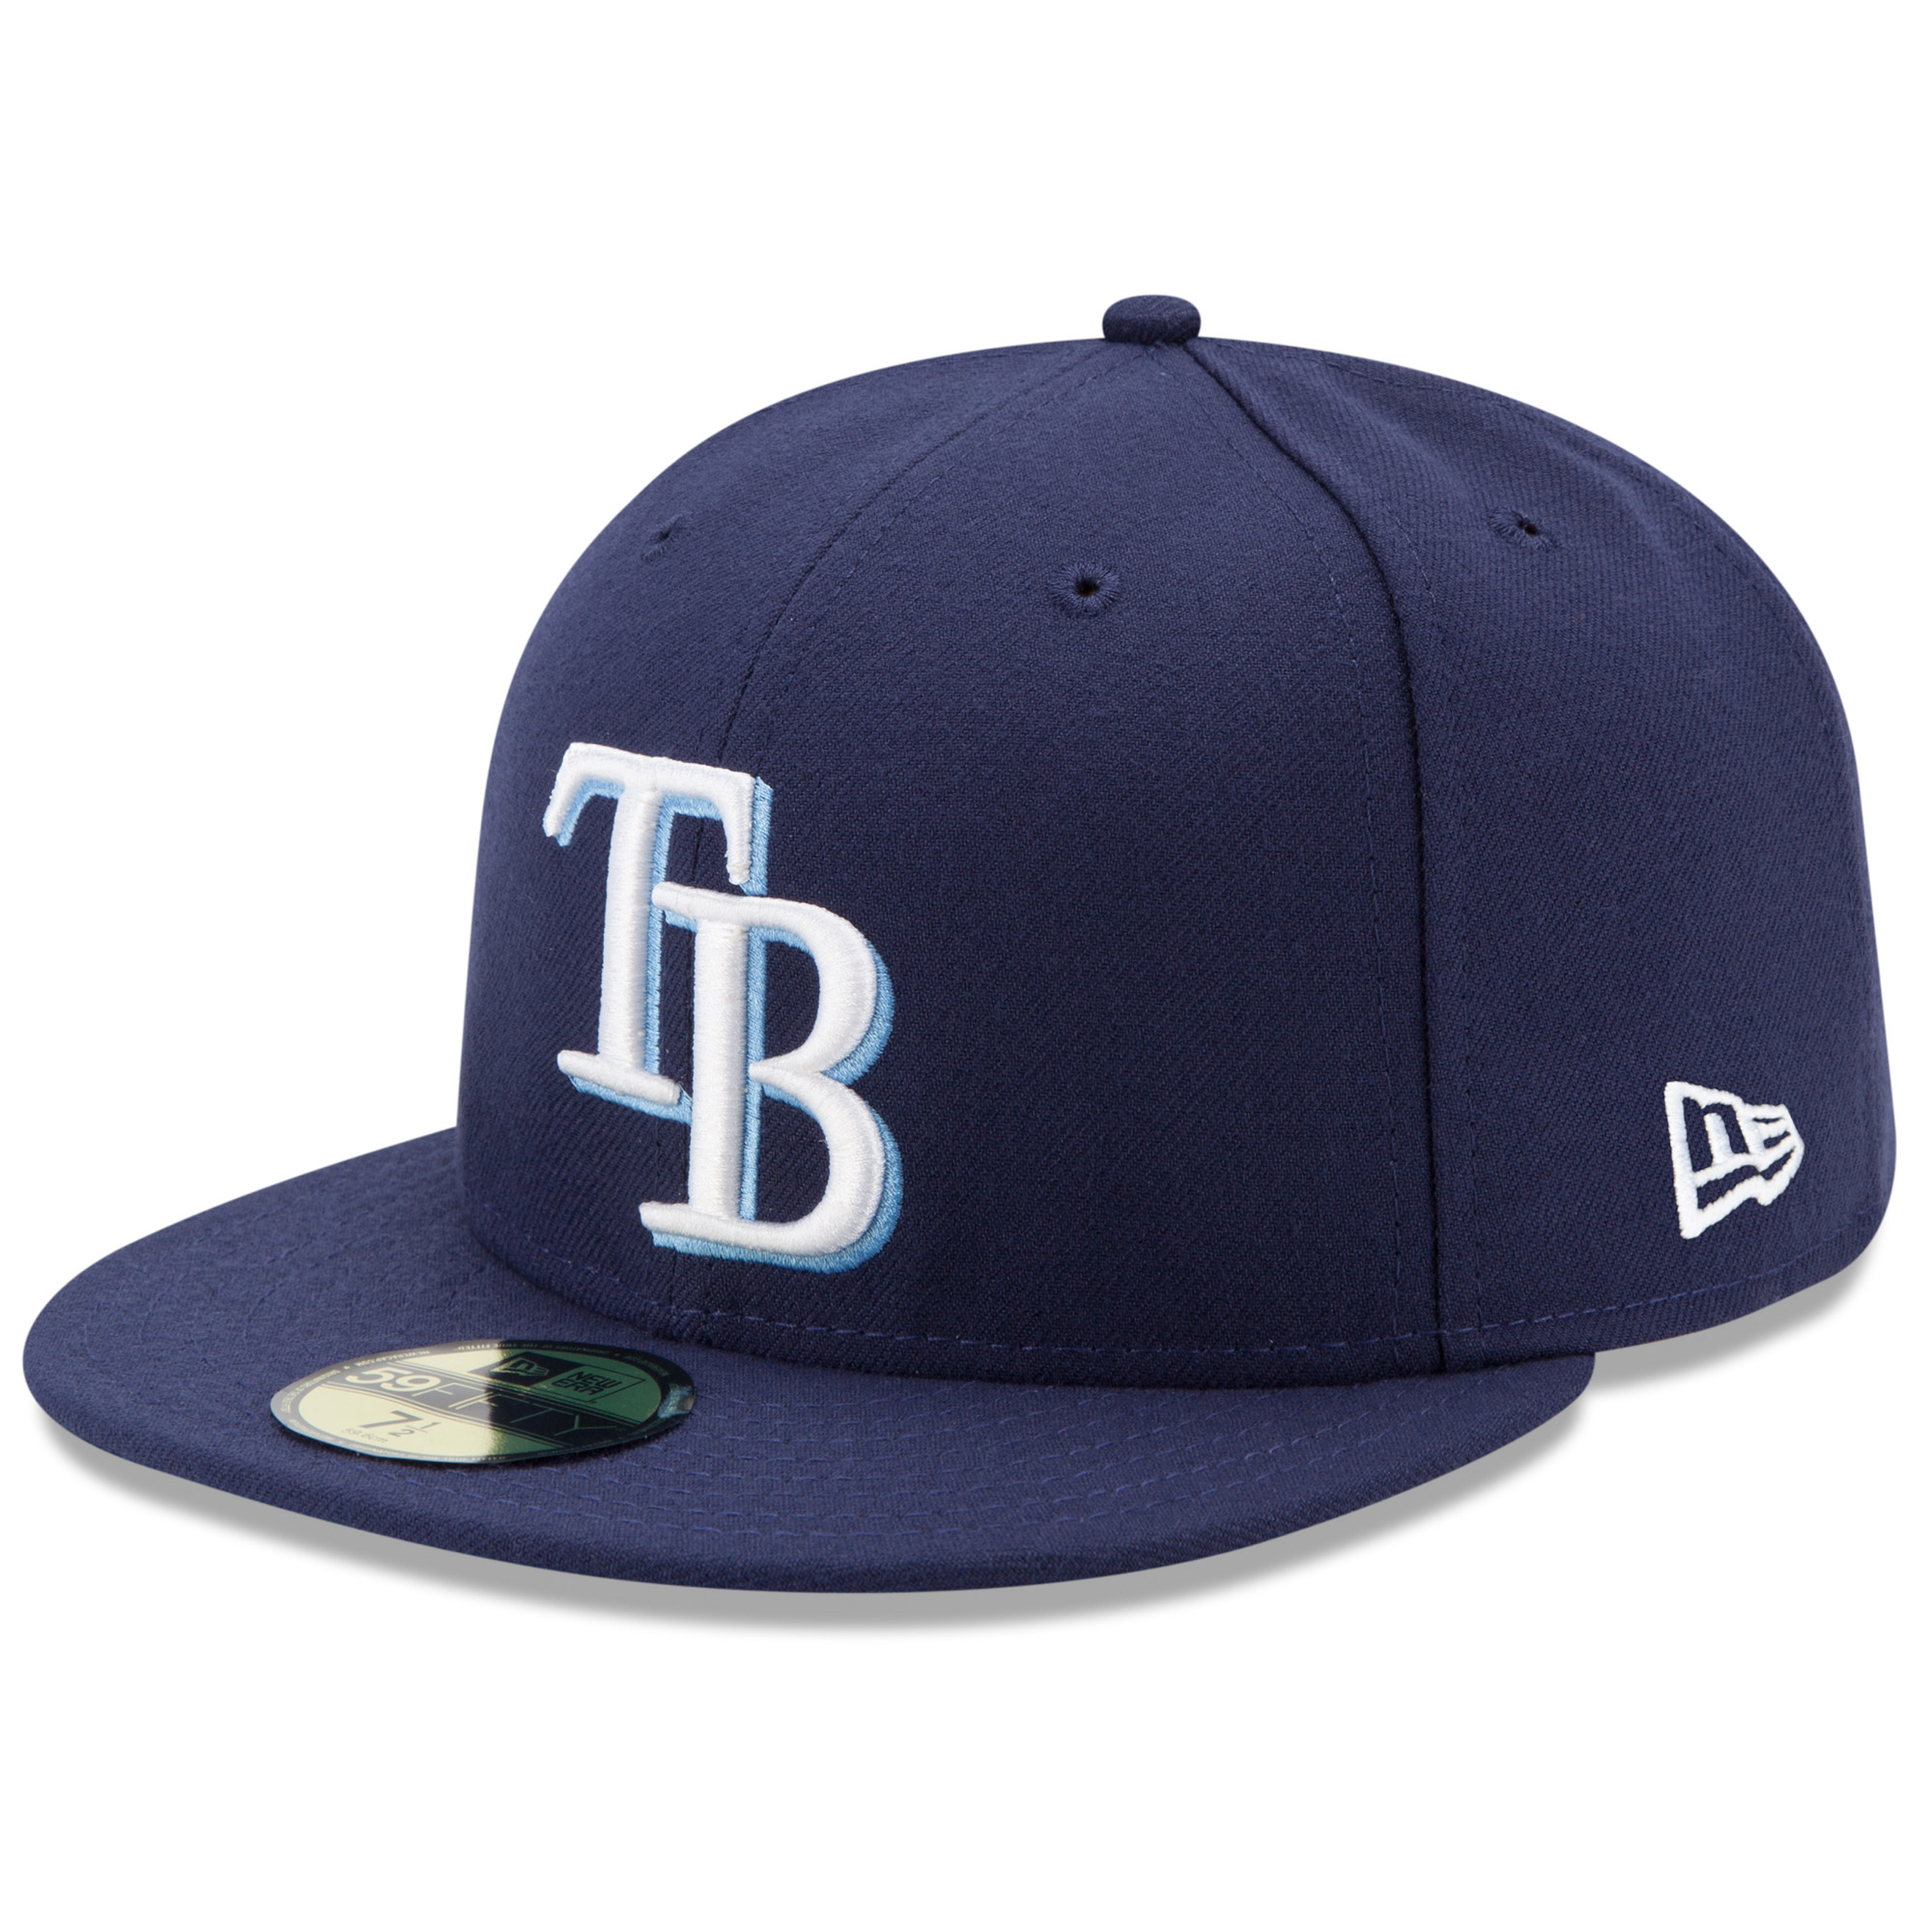 Tampa Bay Rays New Era Game Authentic Collection On-Field 59FIFTY Fitted Hat - Navy